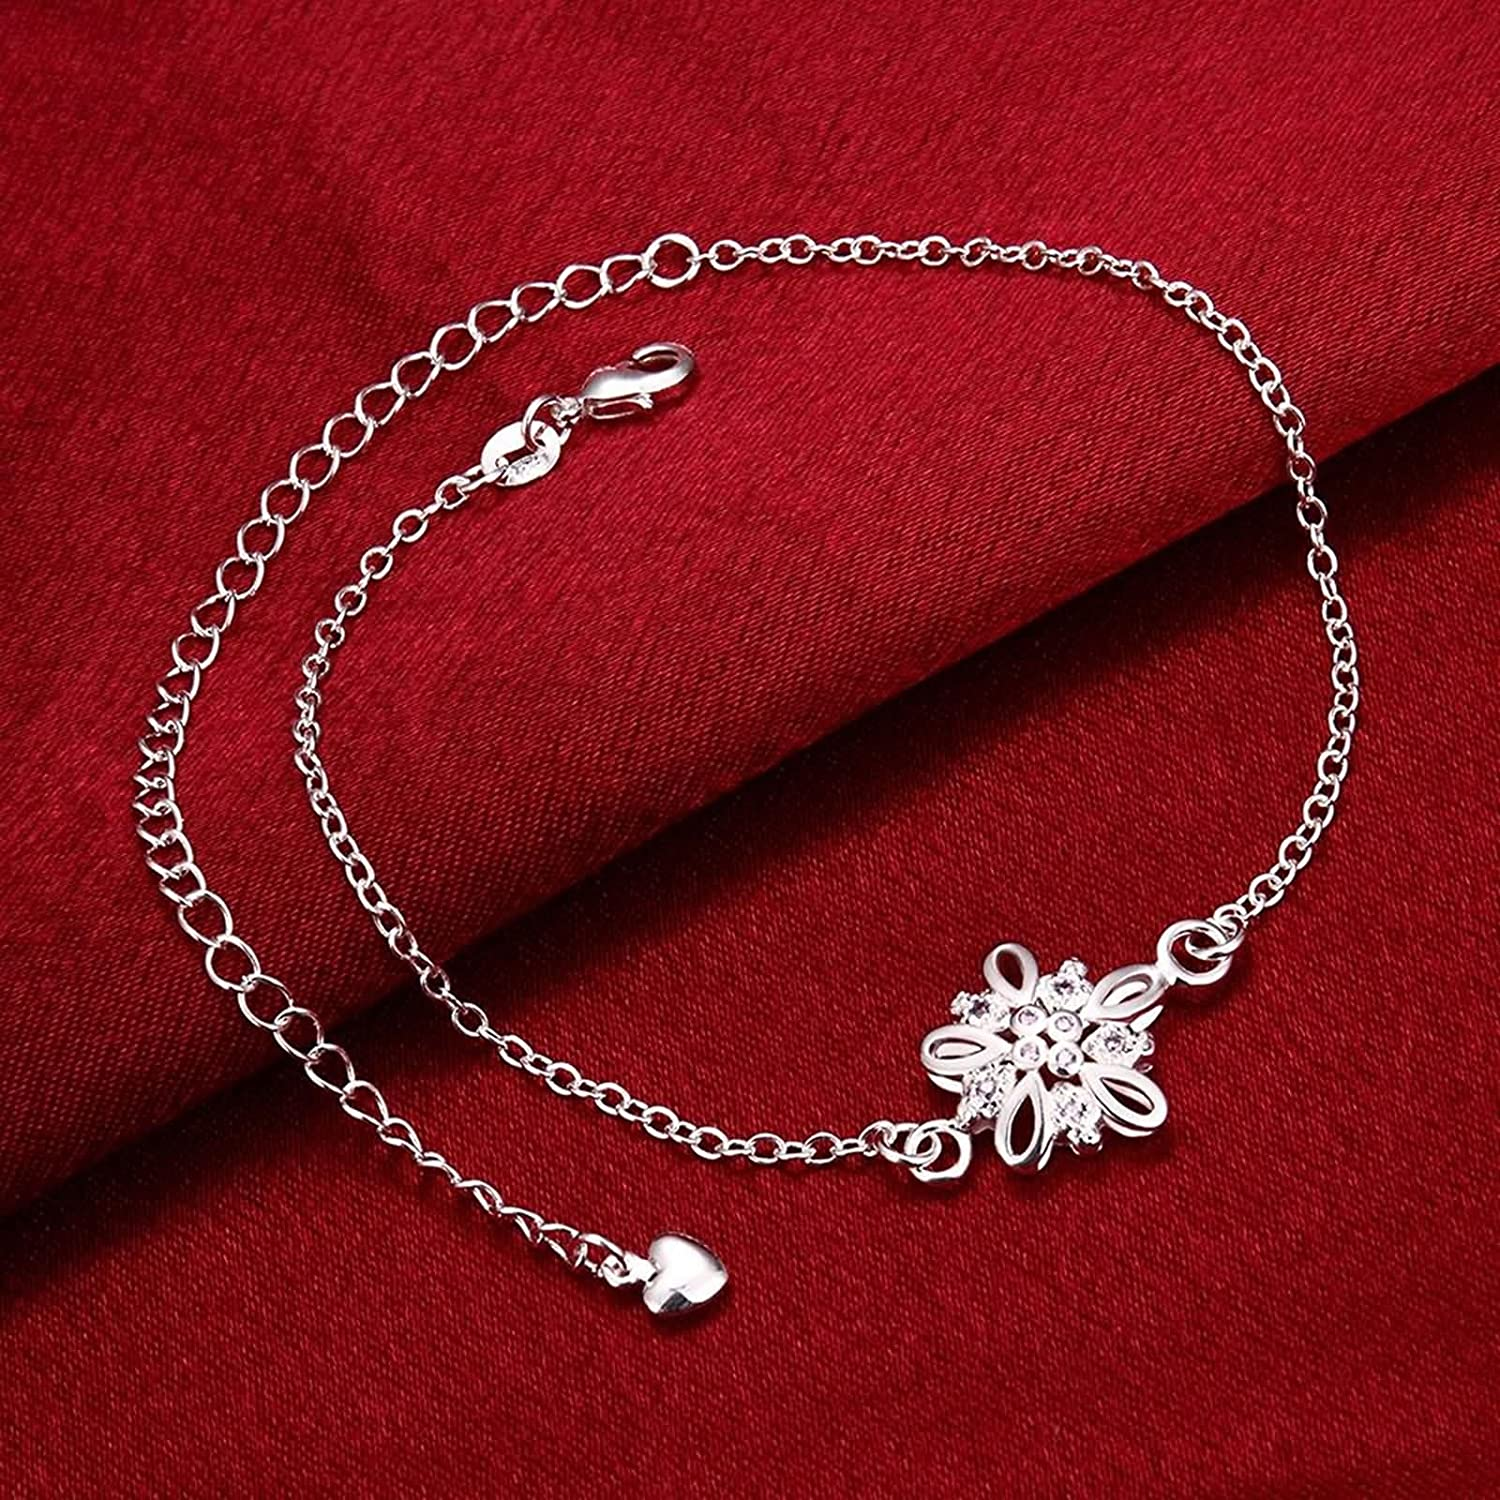 Bishilin Ankle Bracelets Native For Women Hollow Flower Cubic Zirconia anklet jewelry 2.4 CM